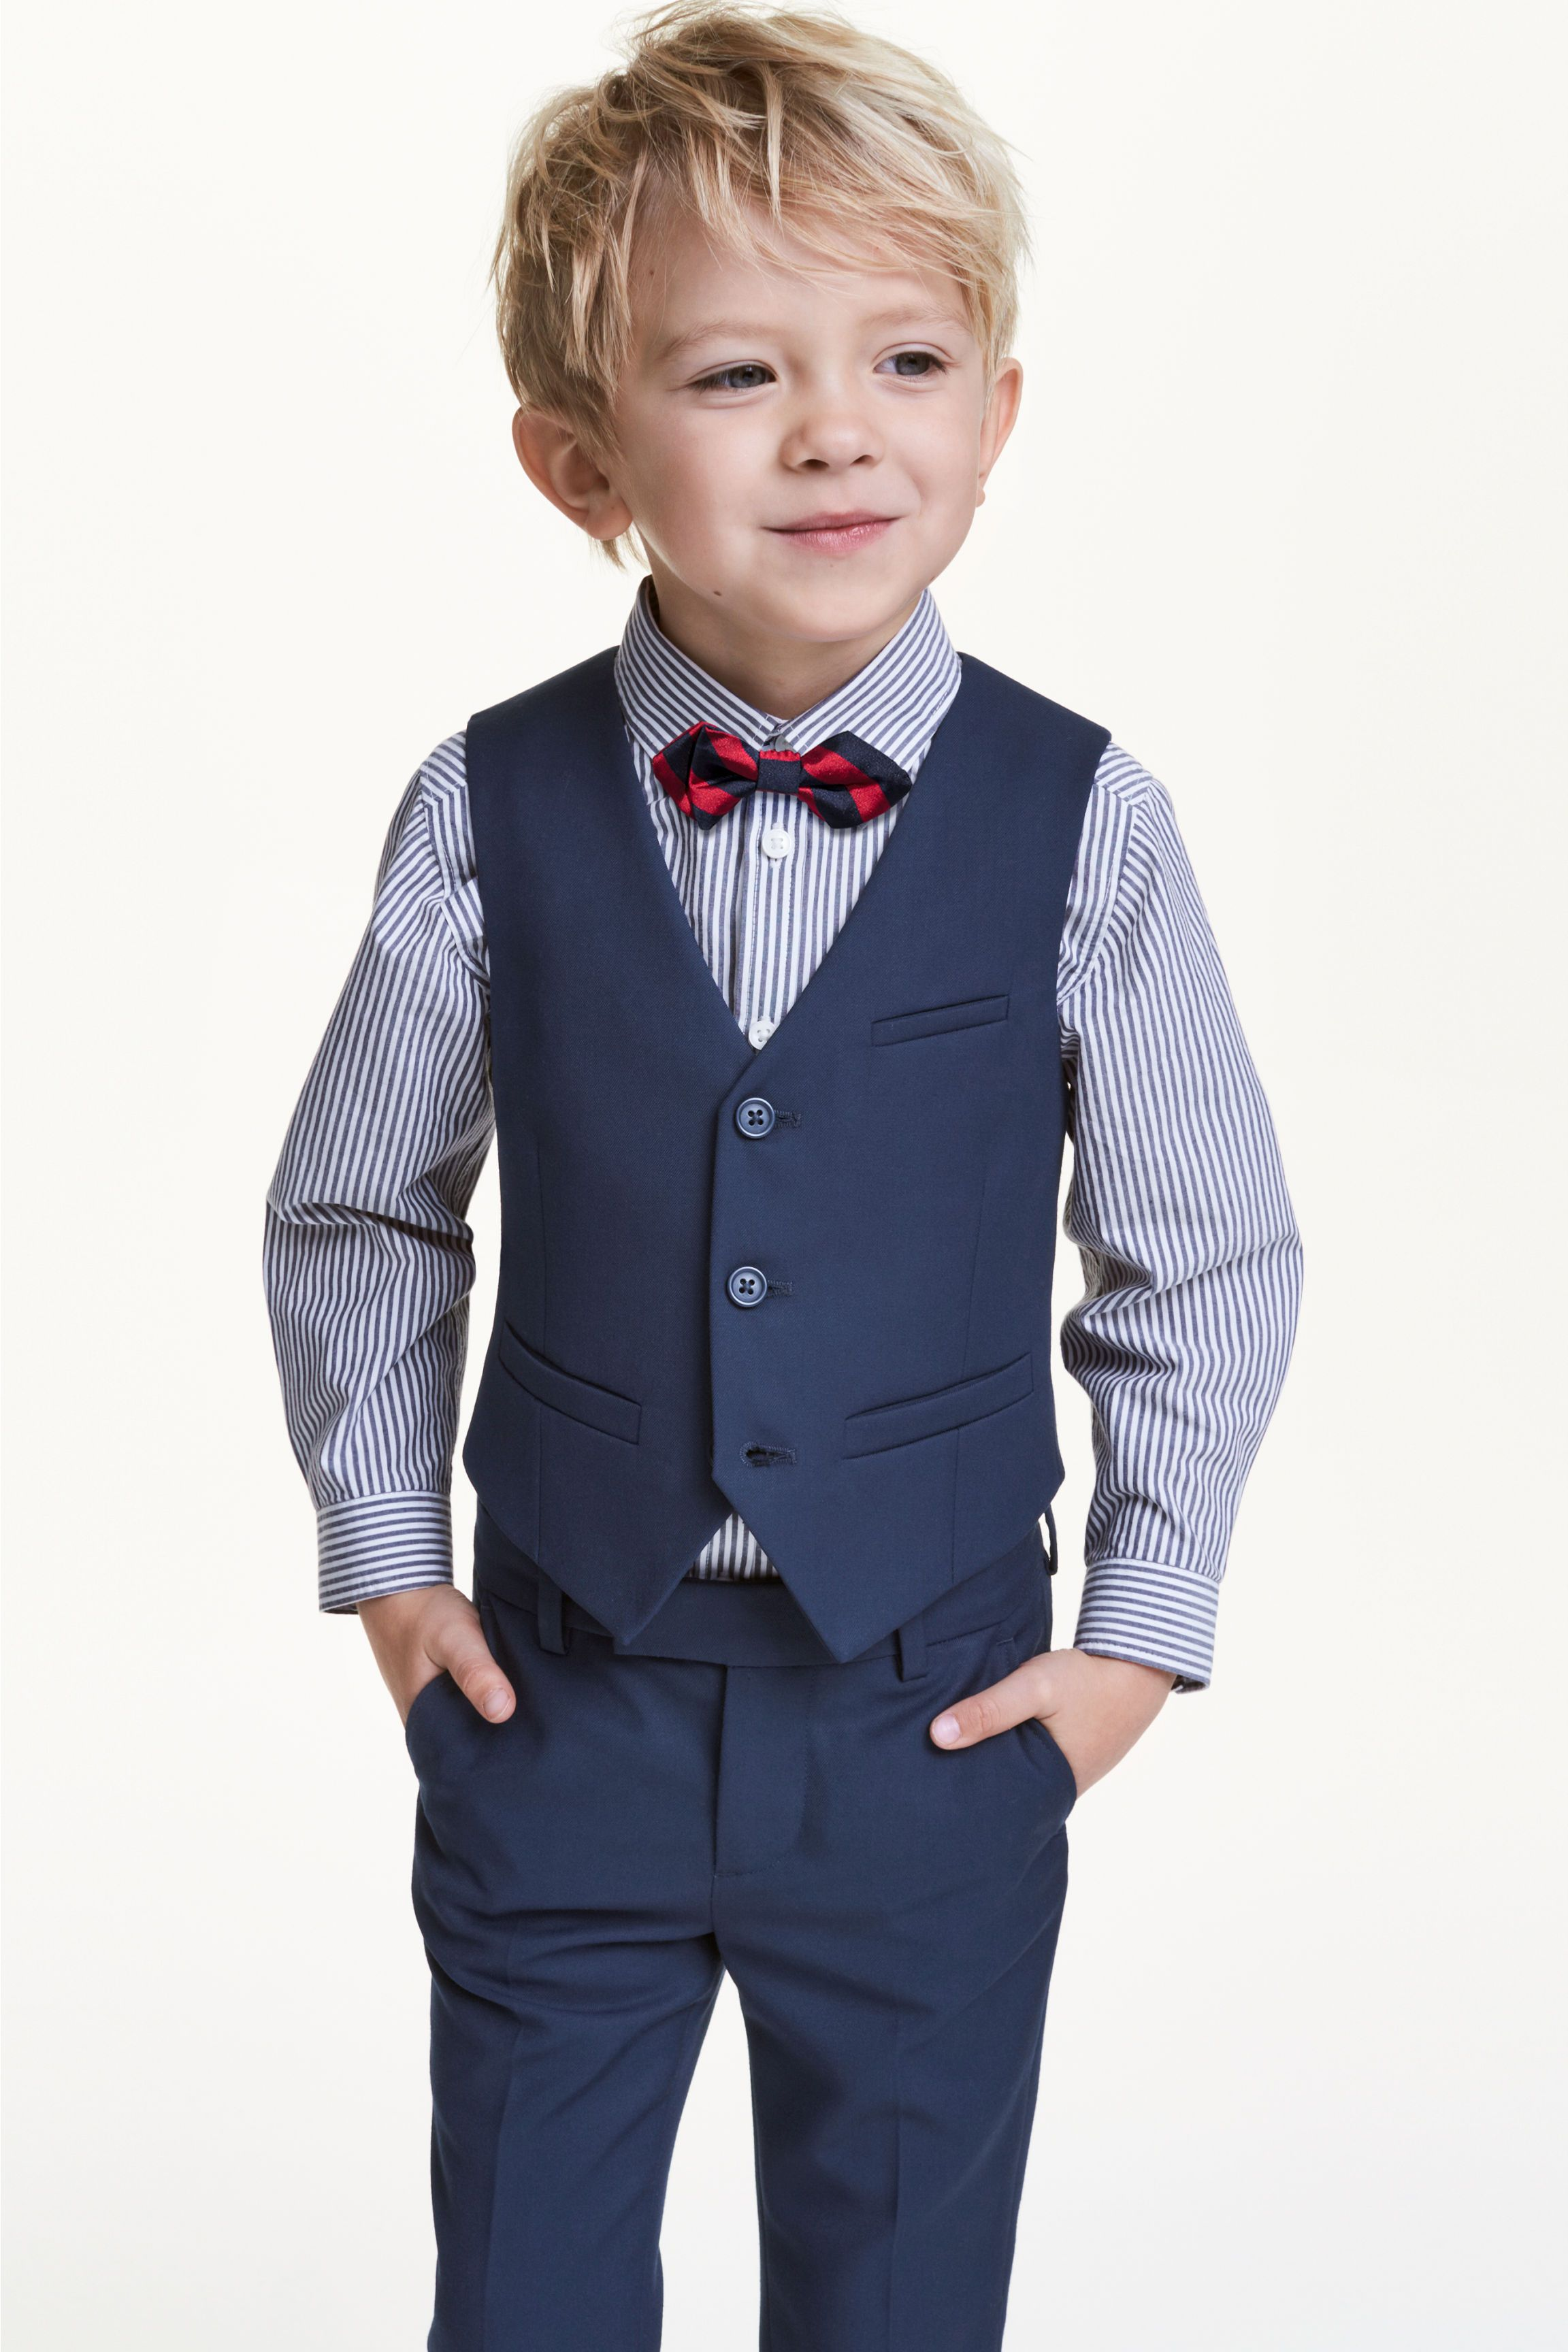 Panciotto Boys Wedding Suits Wedding Outfit For Boys